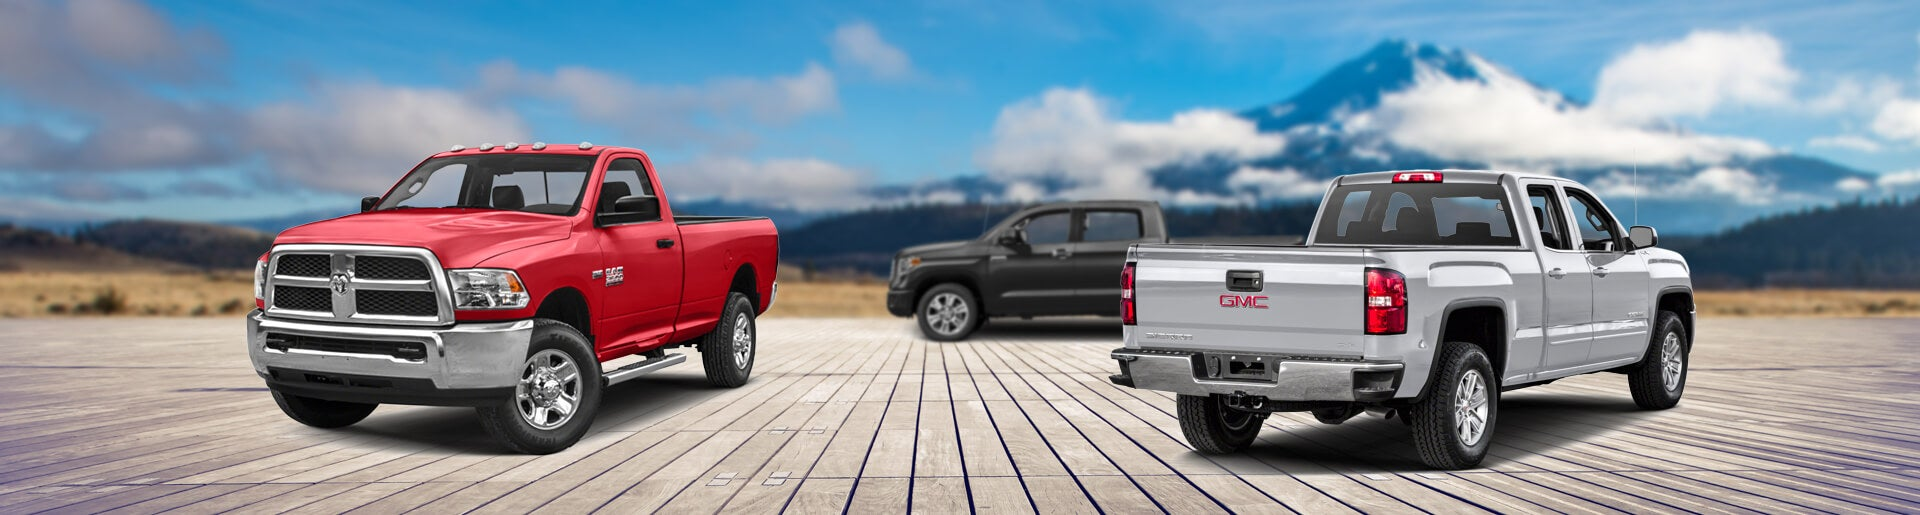 Thompson Toyota Placerville >> Placerville Group Dealer In Placerville Ca New And Used